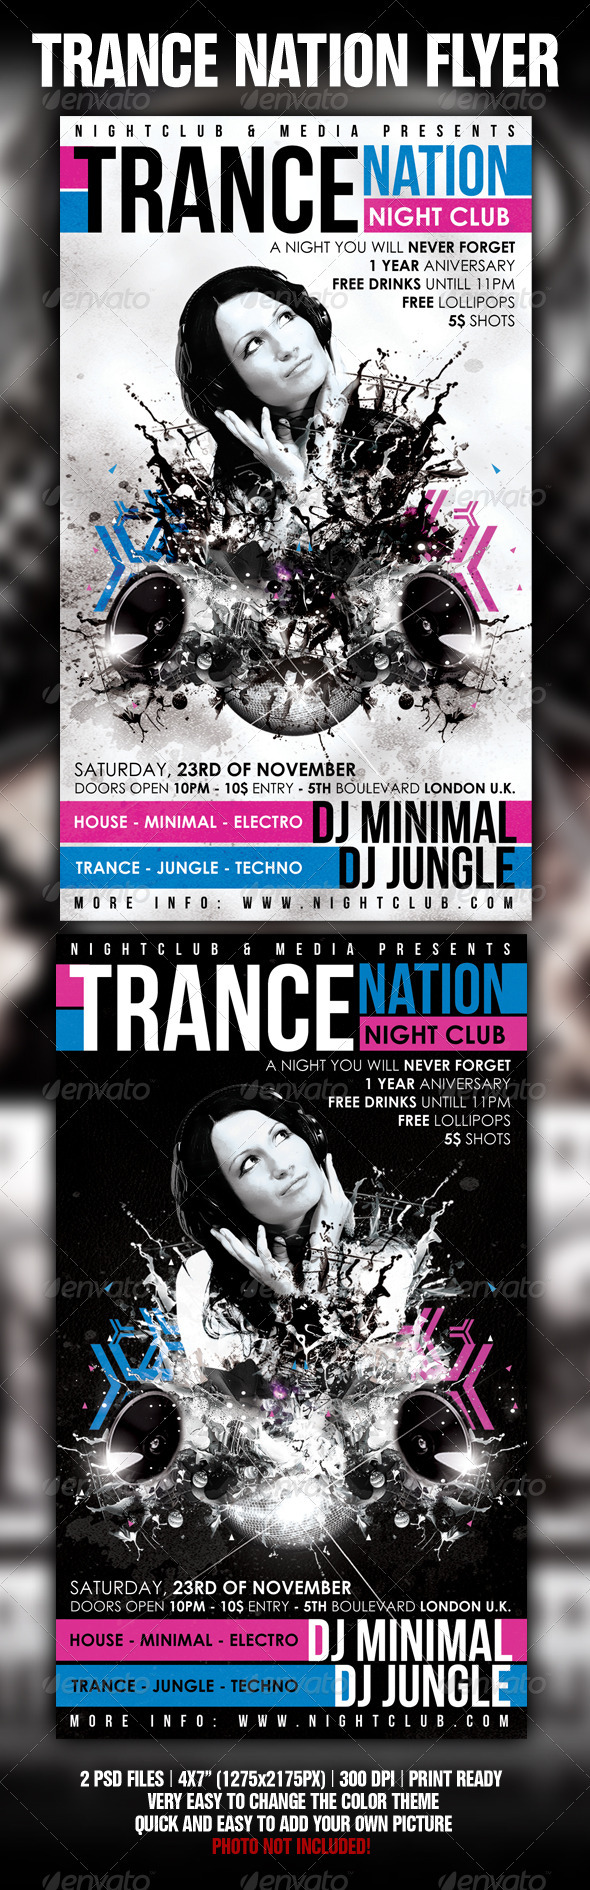 Trance Flyer Template - GraphicRiver Item for Sale